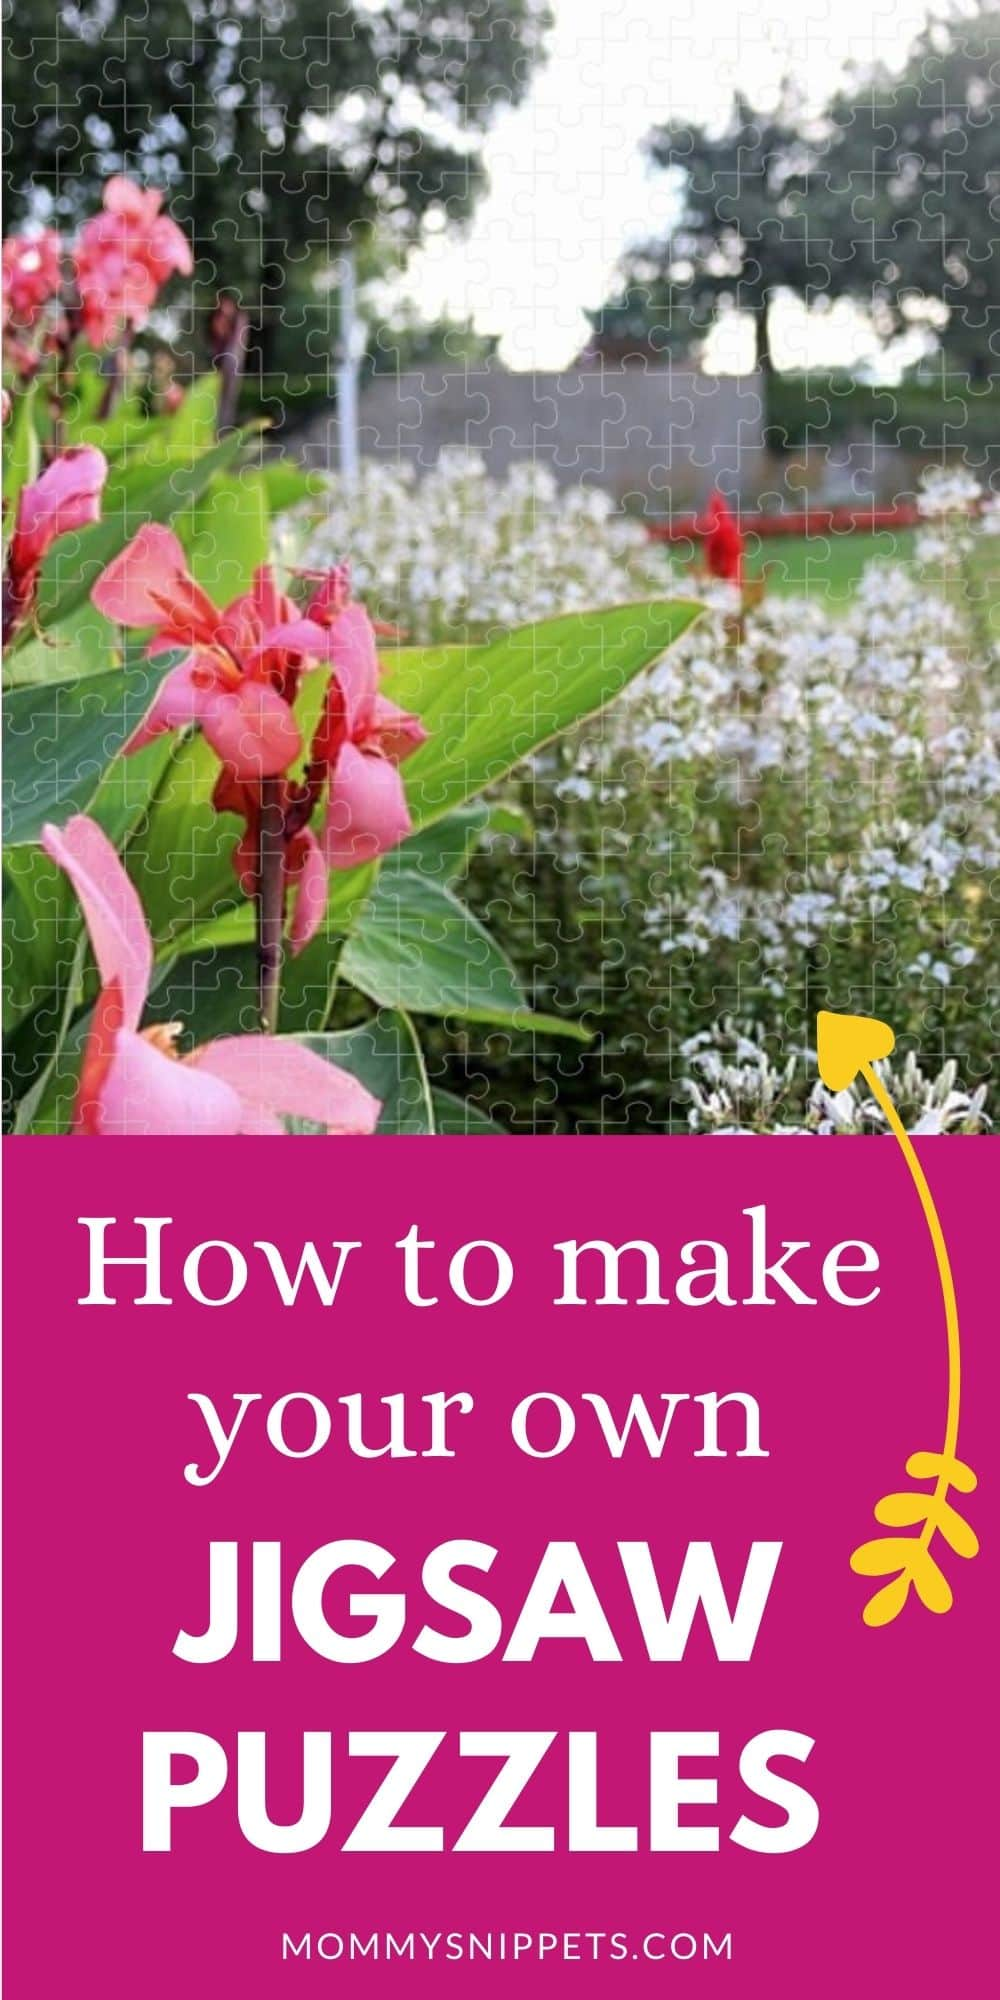 How to make your own jigsaw puzzles